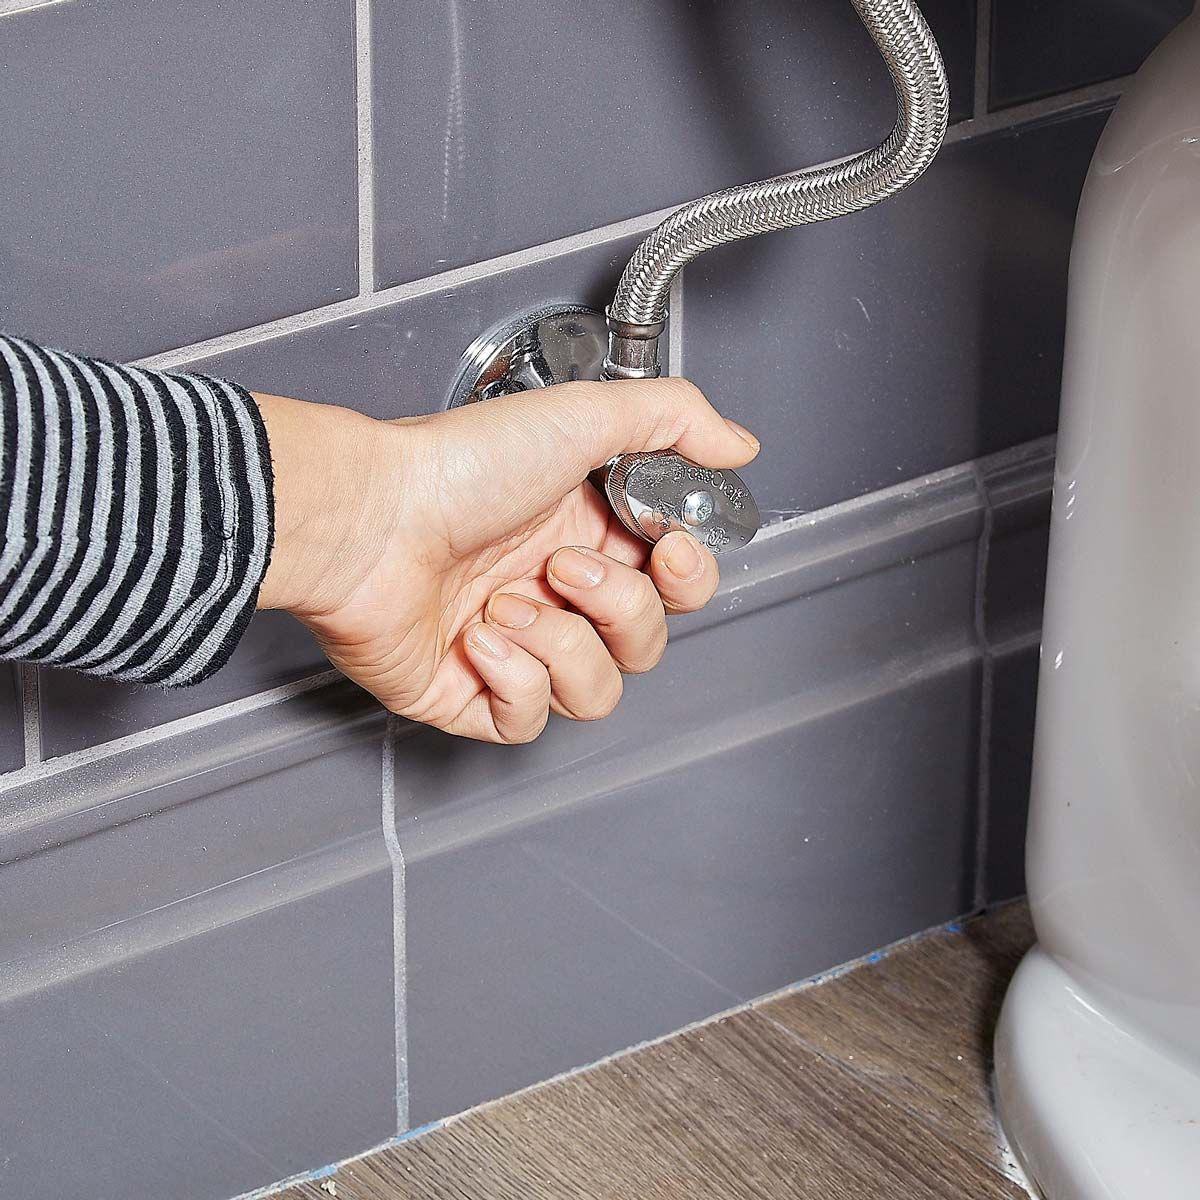 Best way to flush toilet when water is off